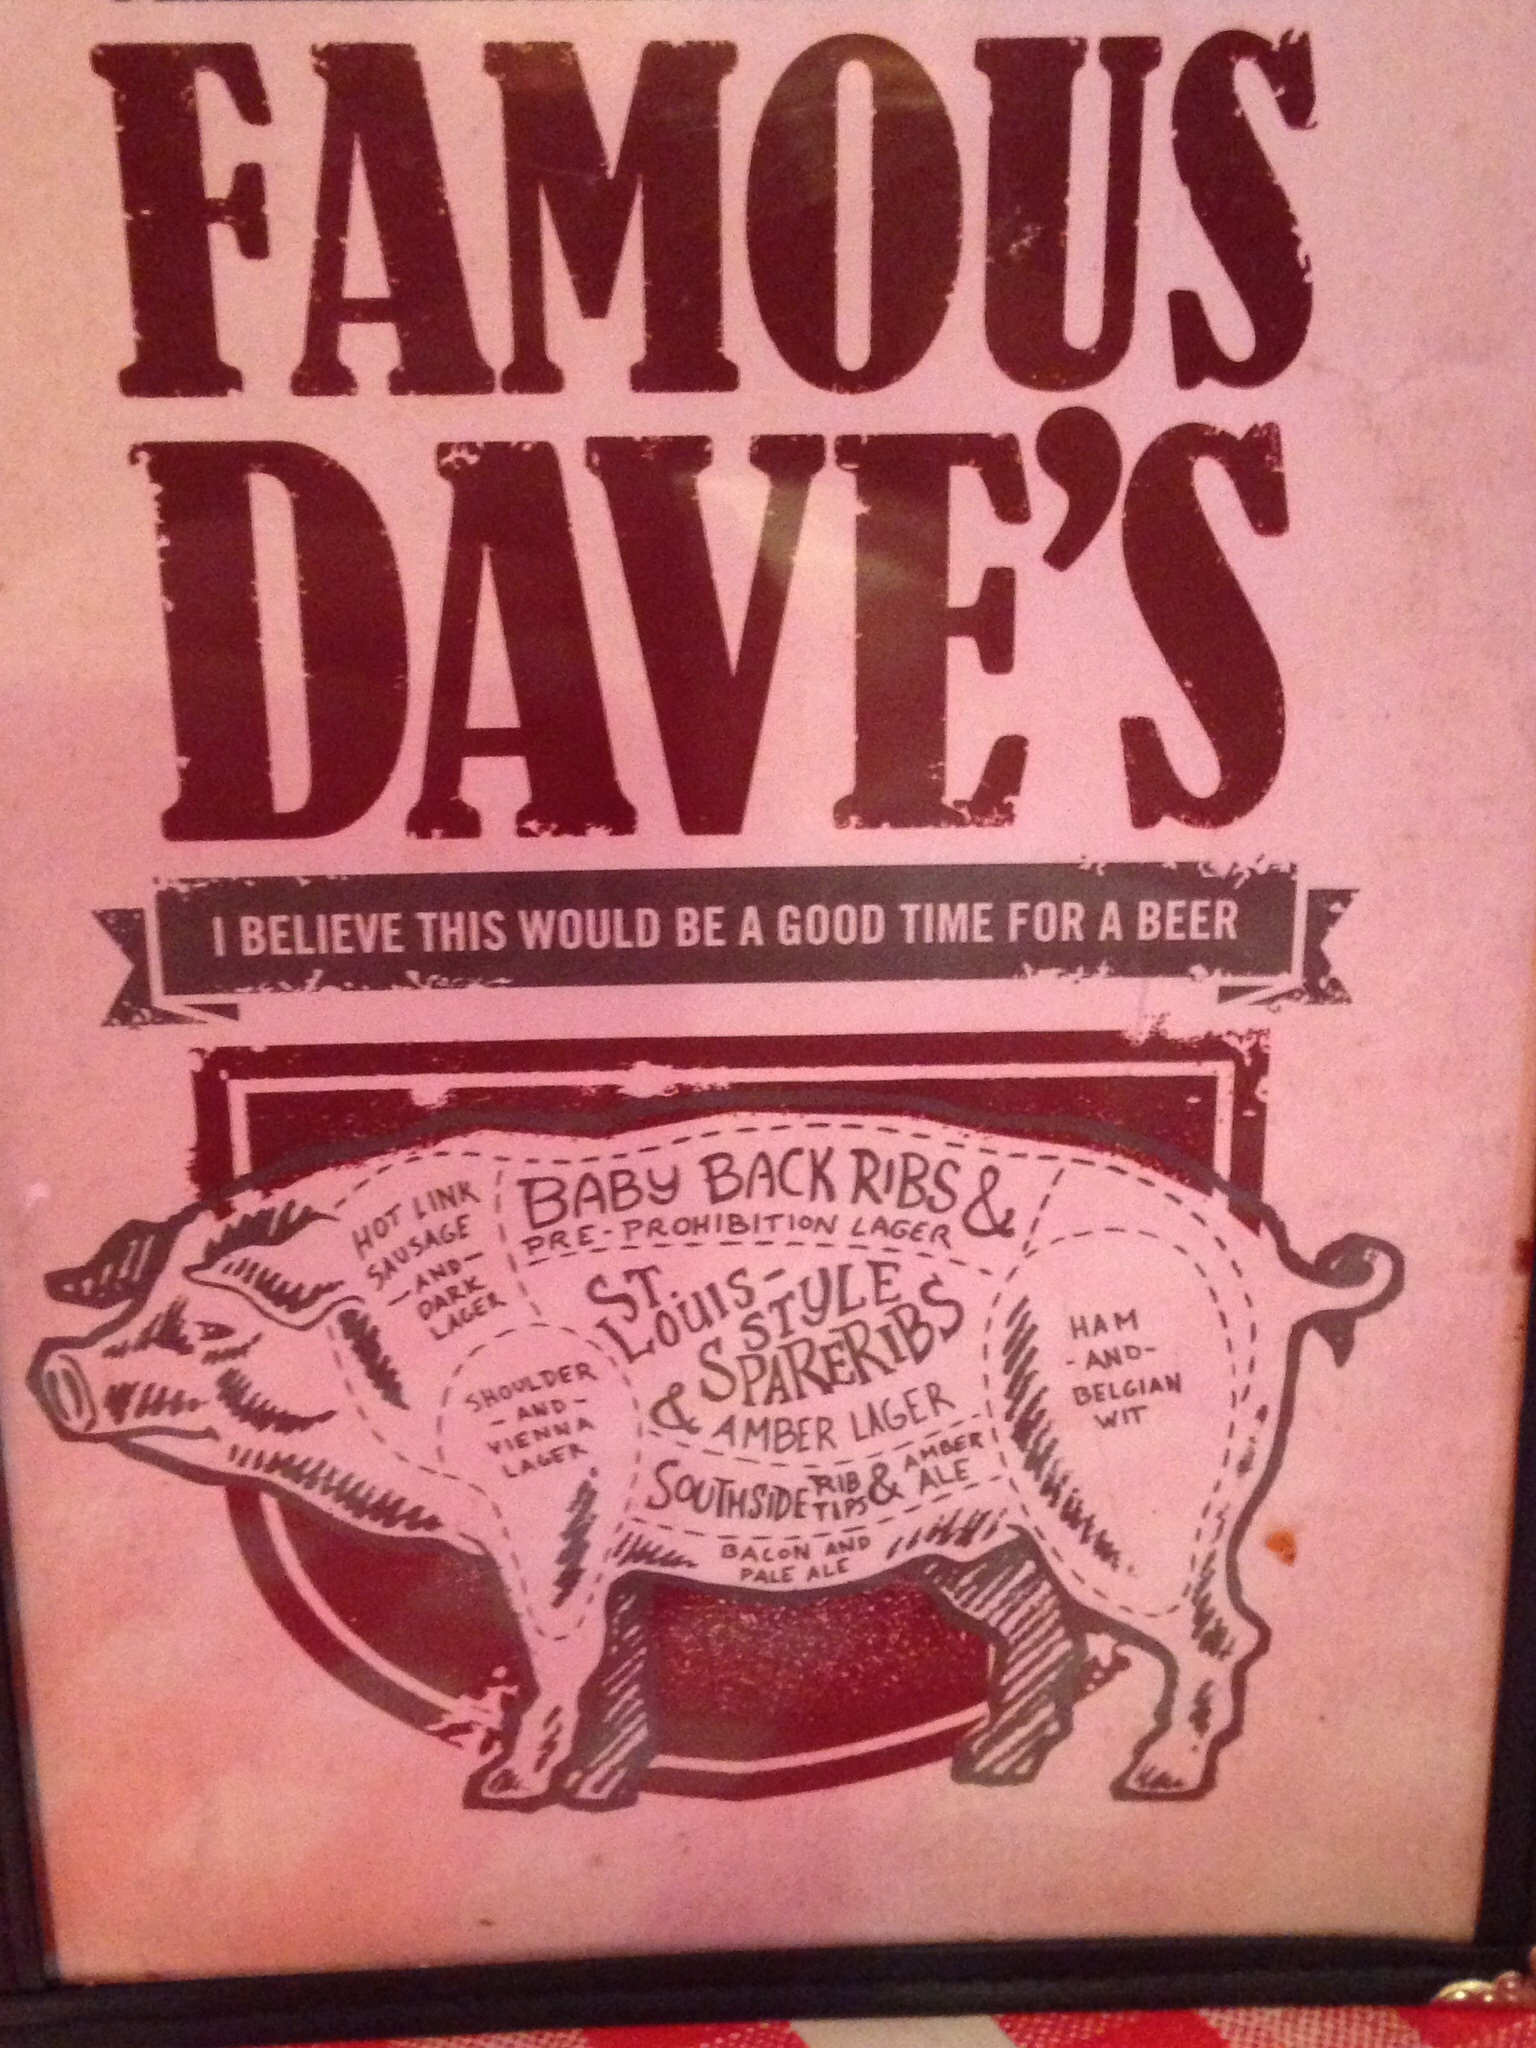 famous dave's cuts